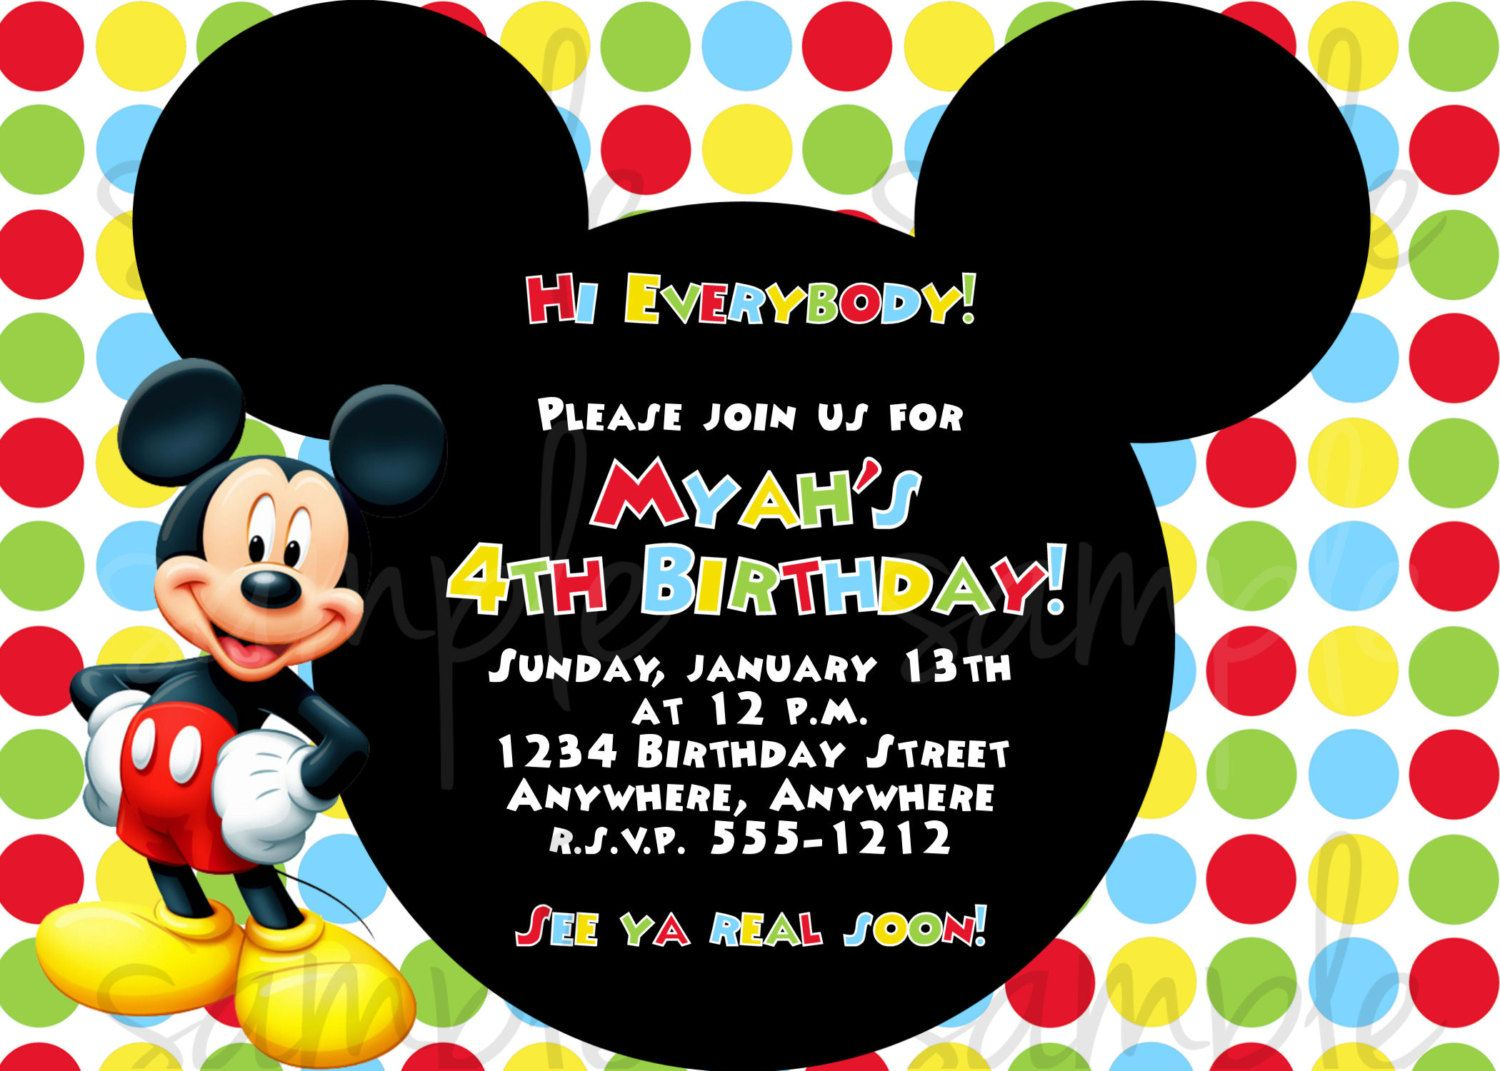 mickey mouse birthday invitation | 1 year birthday | pinterest, Party invitations